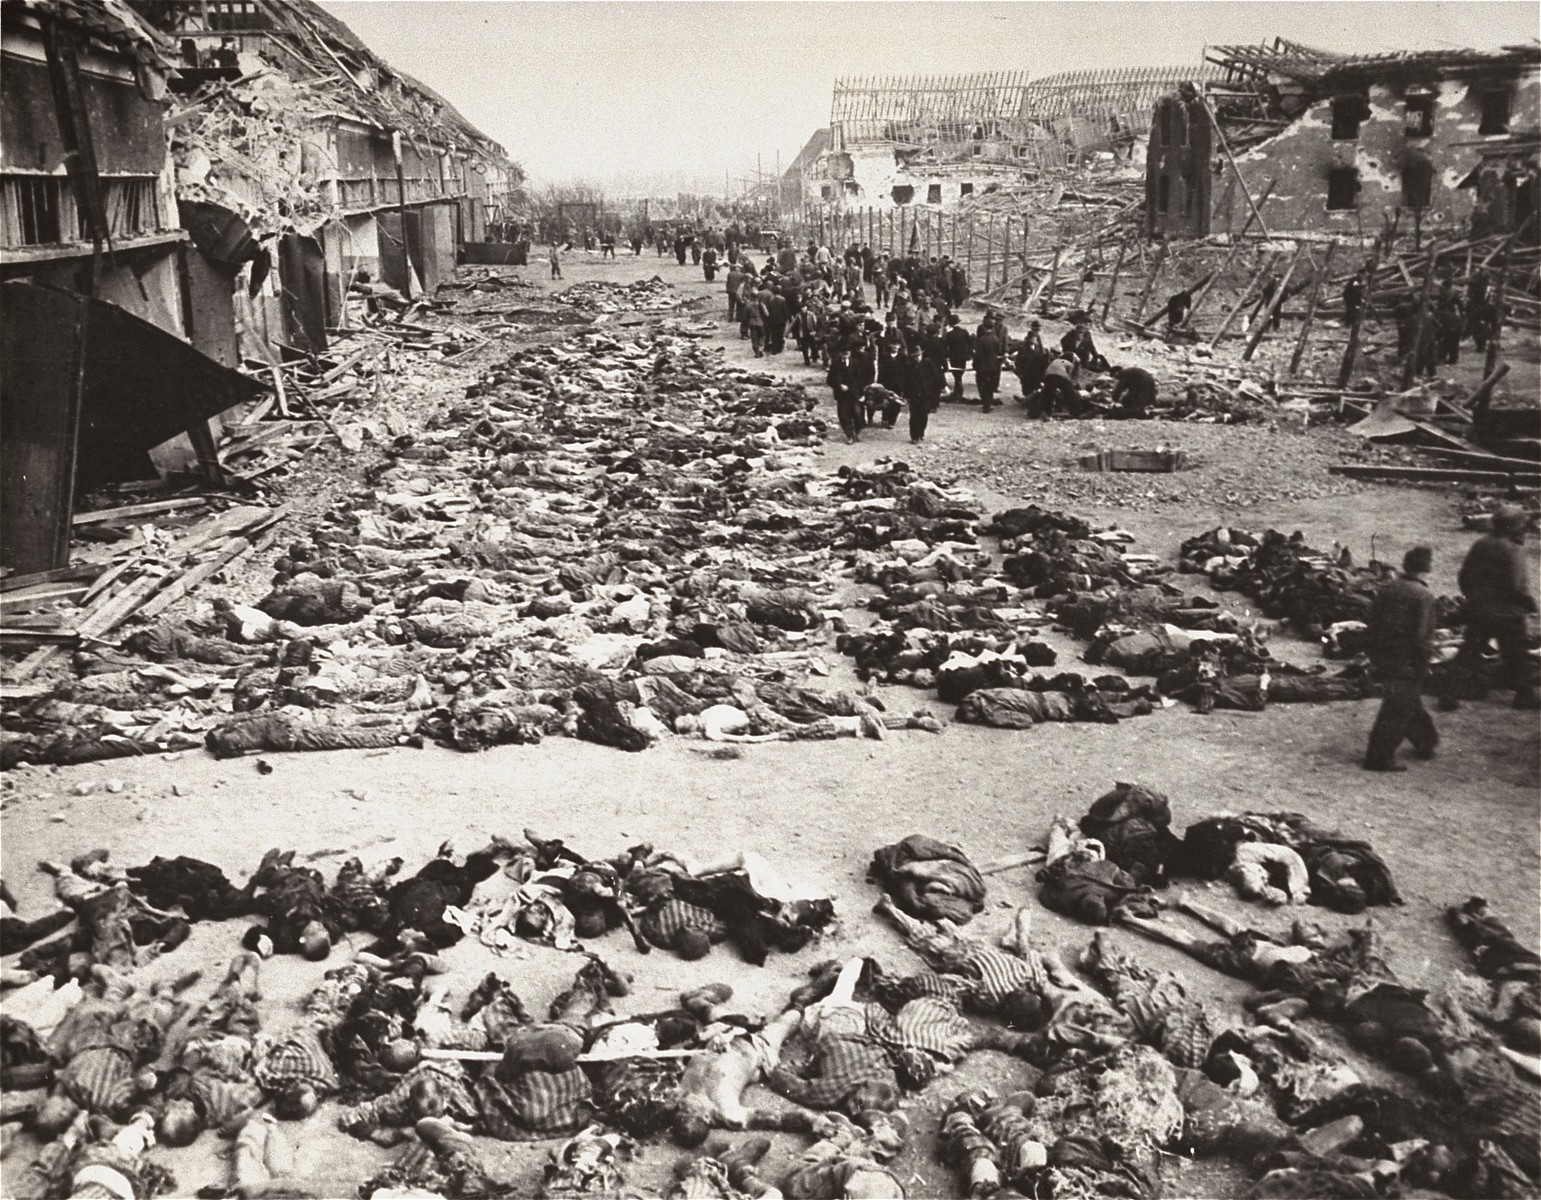 German civilians remove the bodies of prisoners killed in the Nordhausen concentration camp and lay them out in long rows outside the central barracks (Boelke Kaserne).